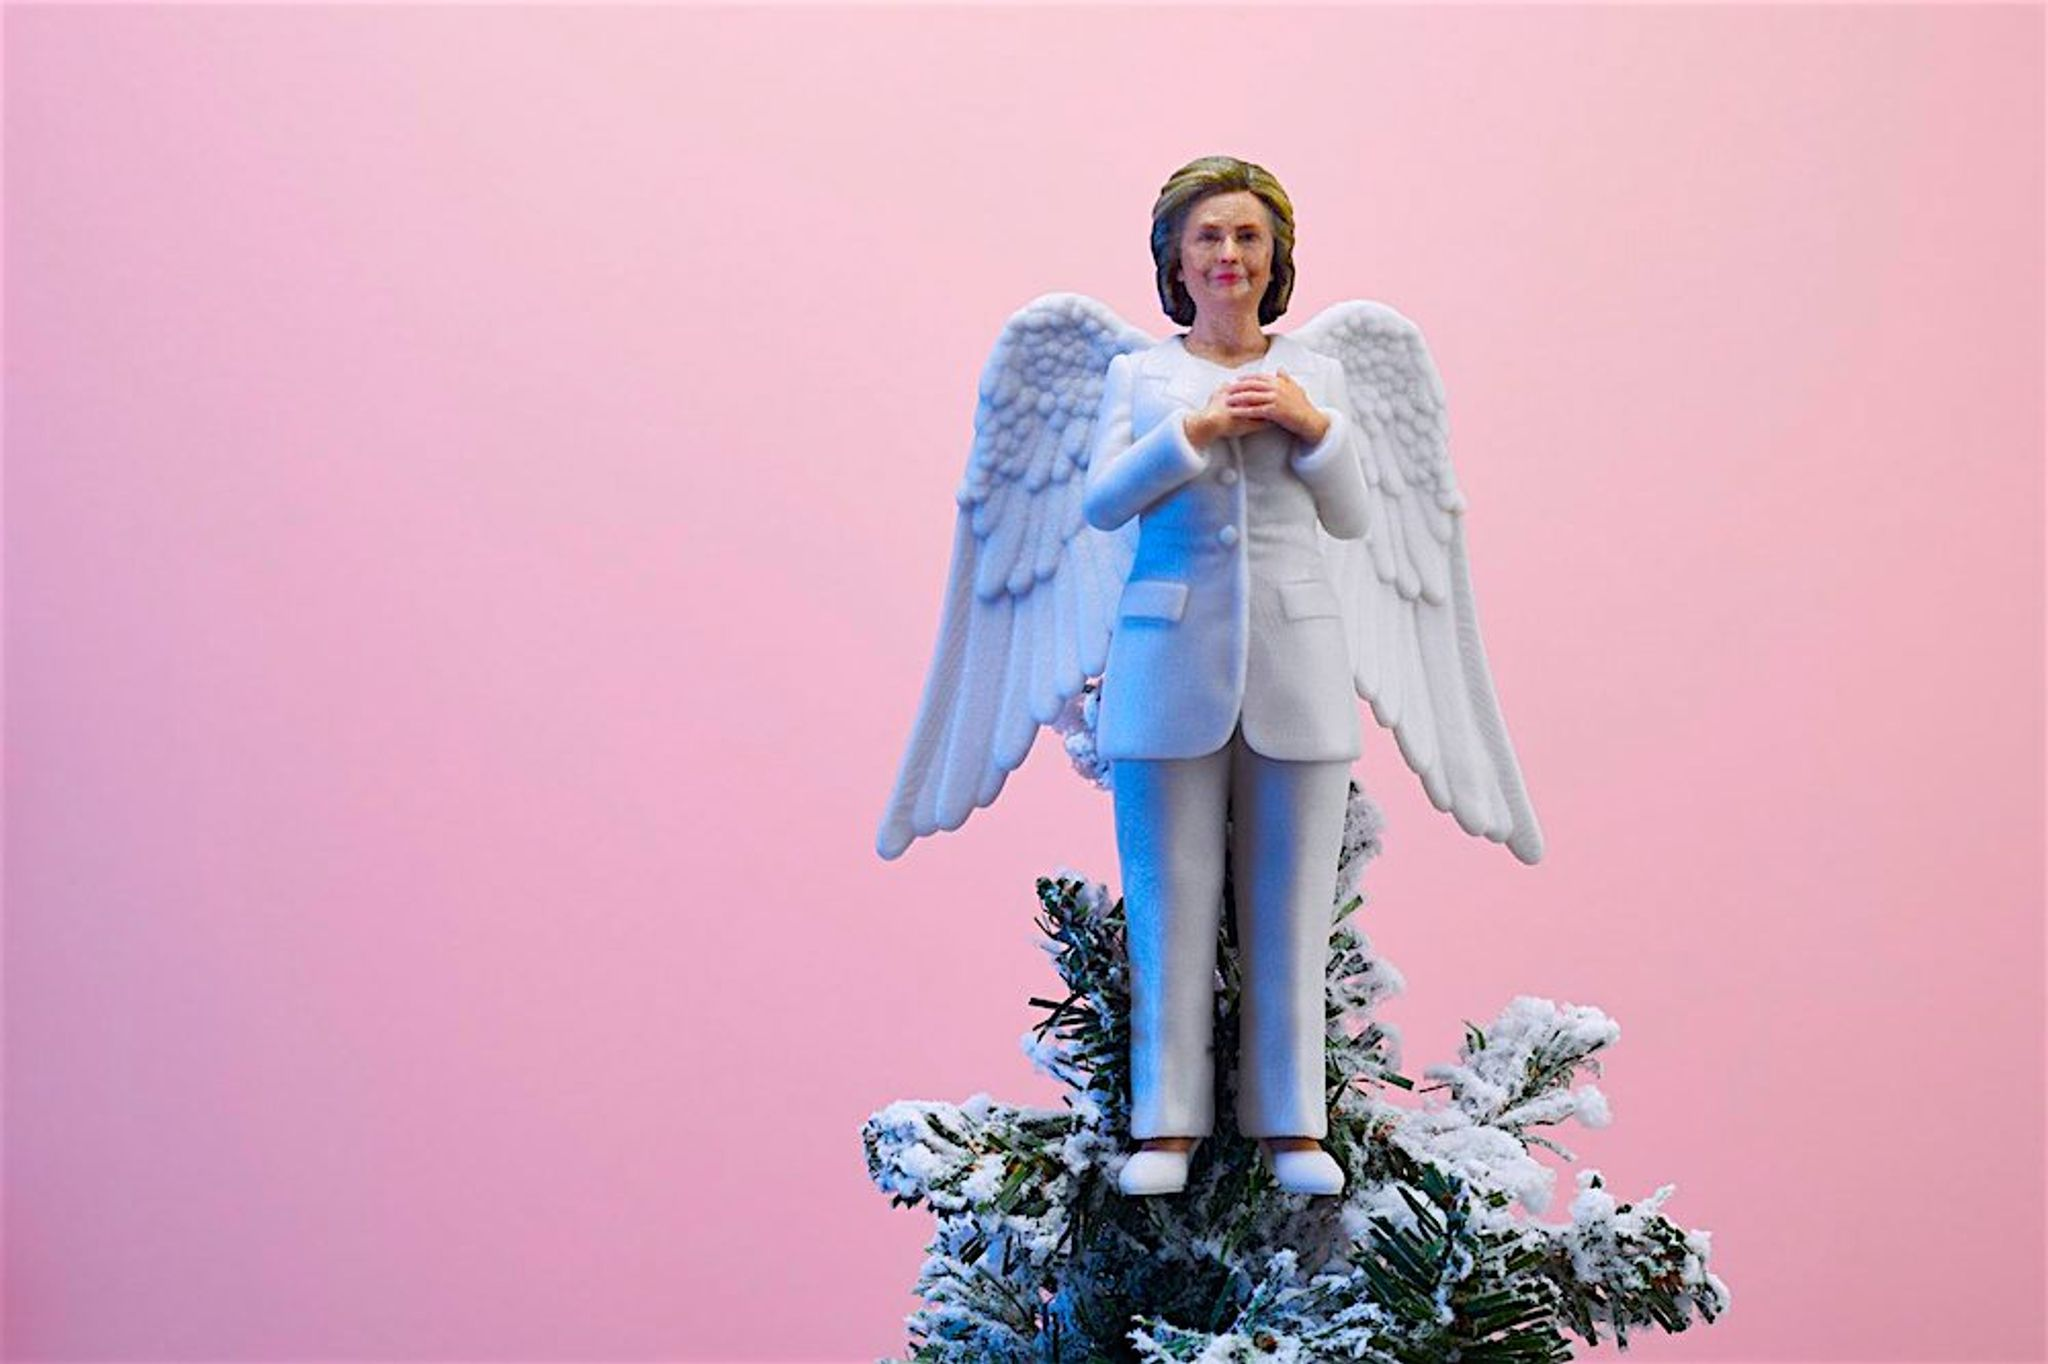 Inside The Beltway Resistmas The Hillary Clinton Christmas Tree